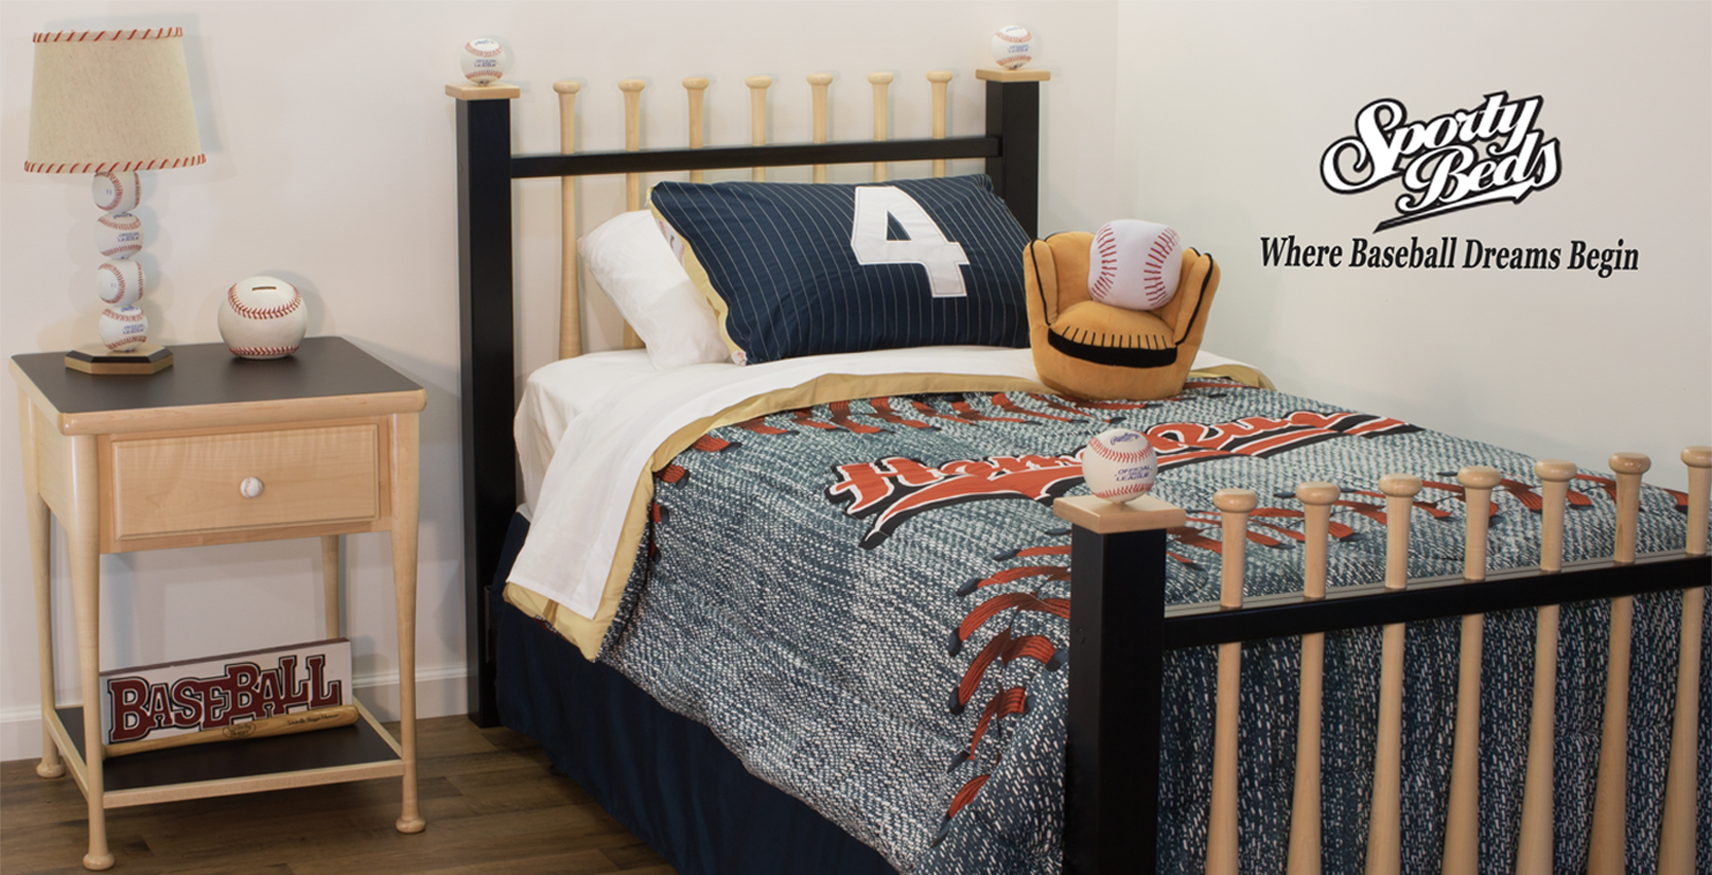 Baseball Furniture For Kids And Adults Of Any Age Sportybeds